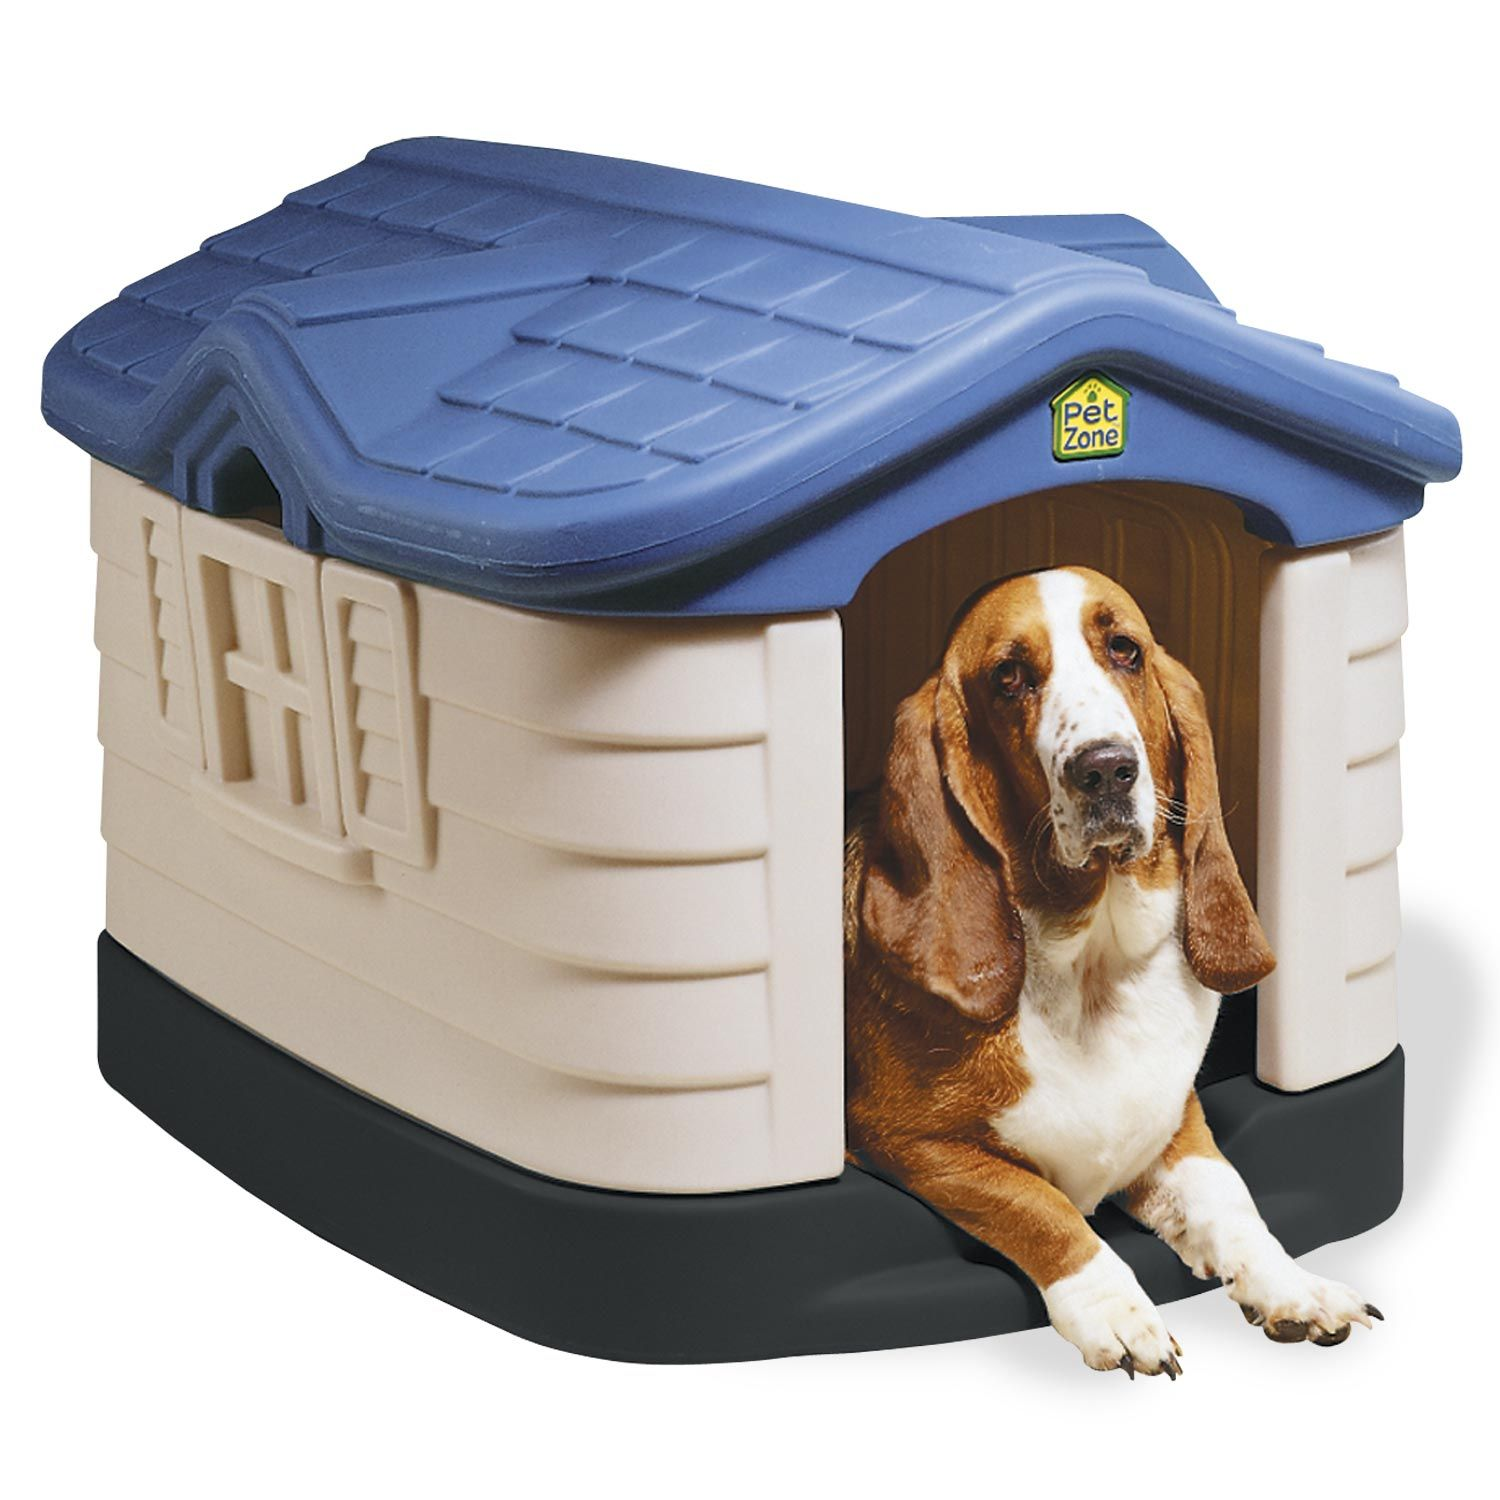 Our Pets Cozy Cottage Dog House 159 99 Dog House Indoor Dog House